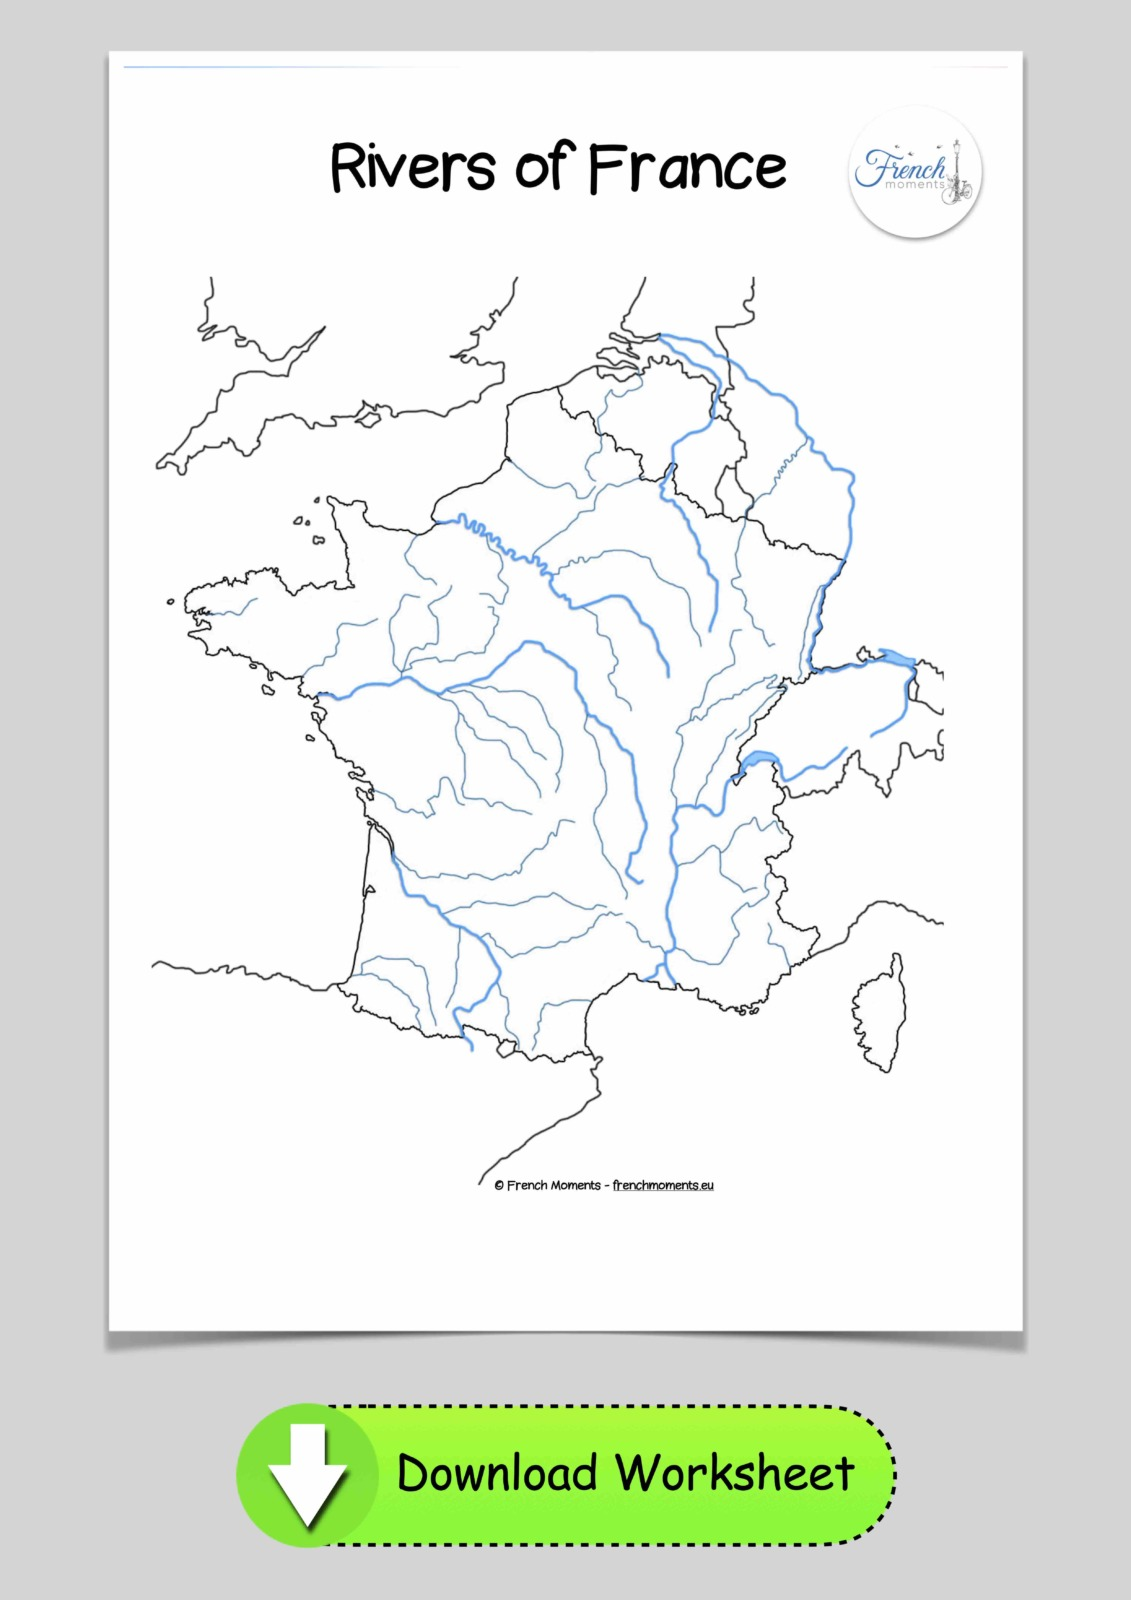 Blank Map of France Rivers © French Moments